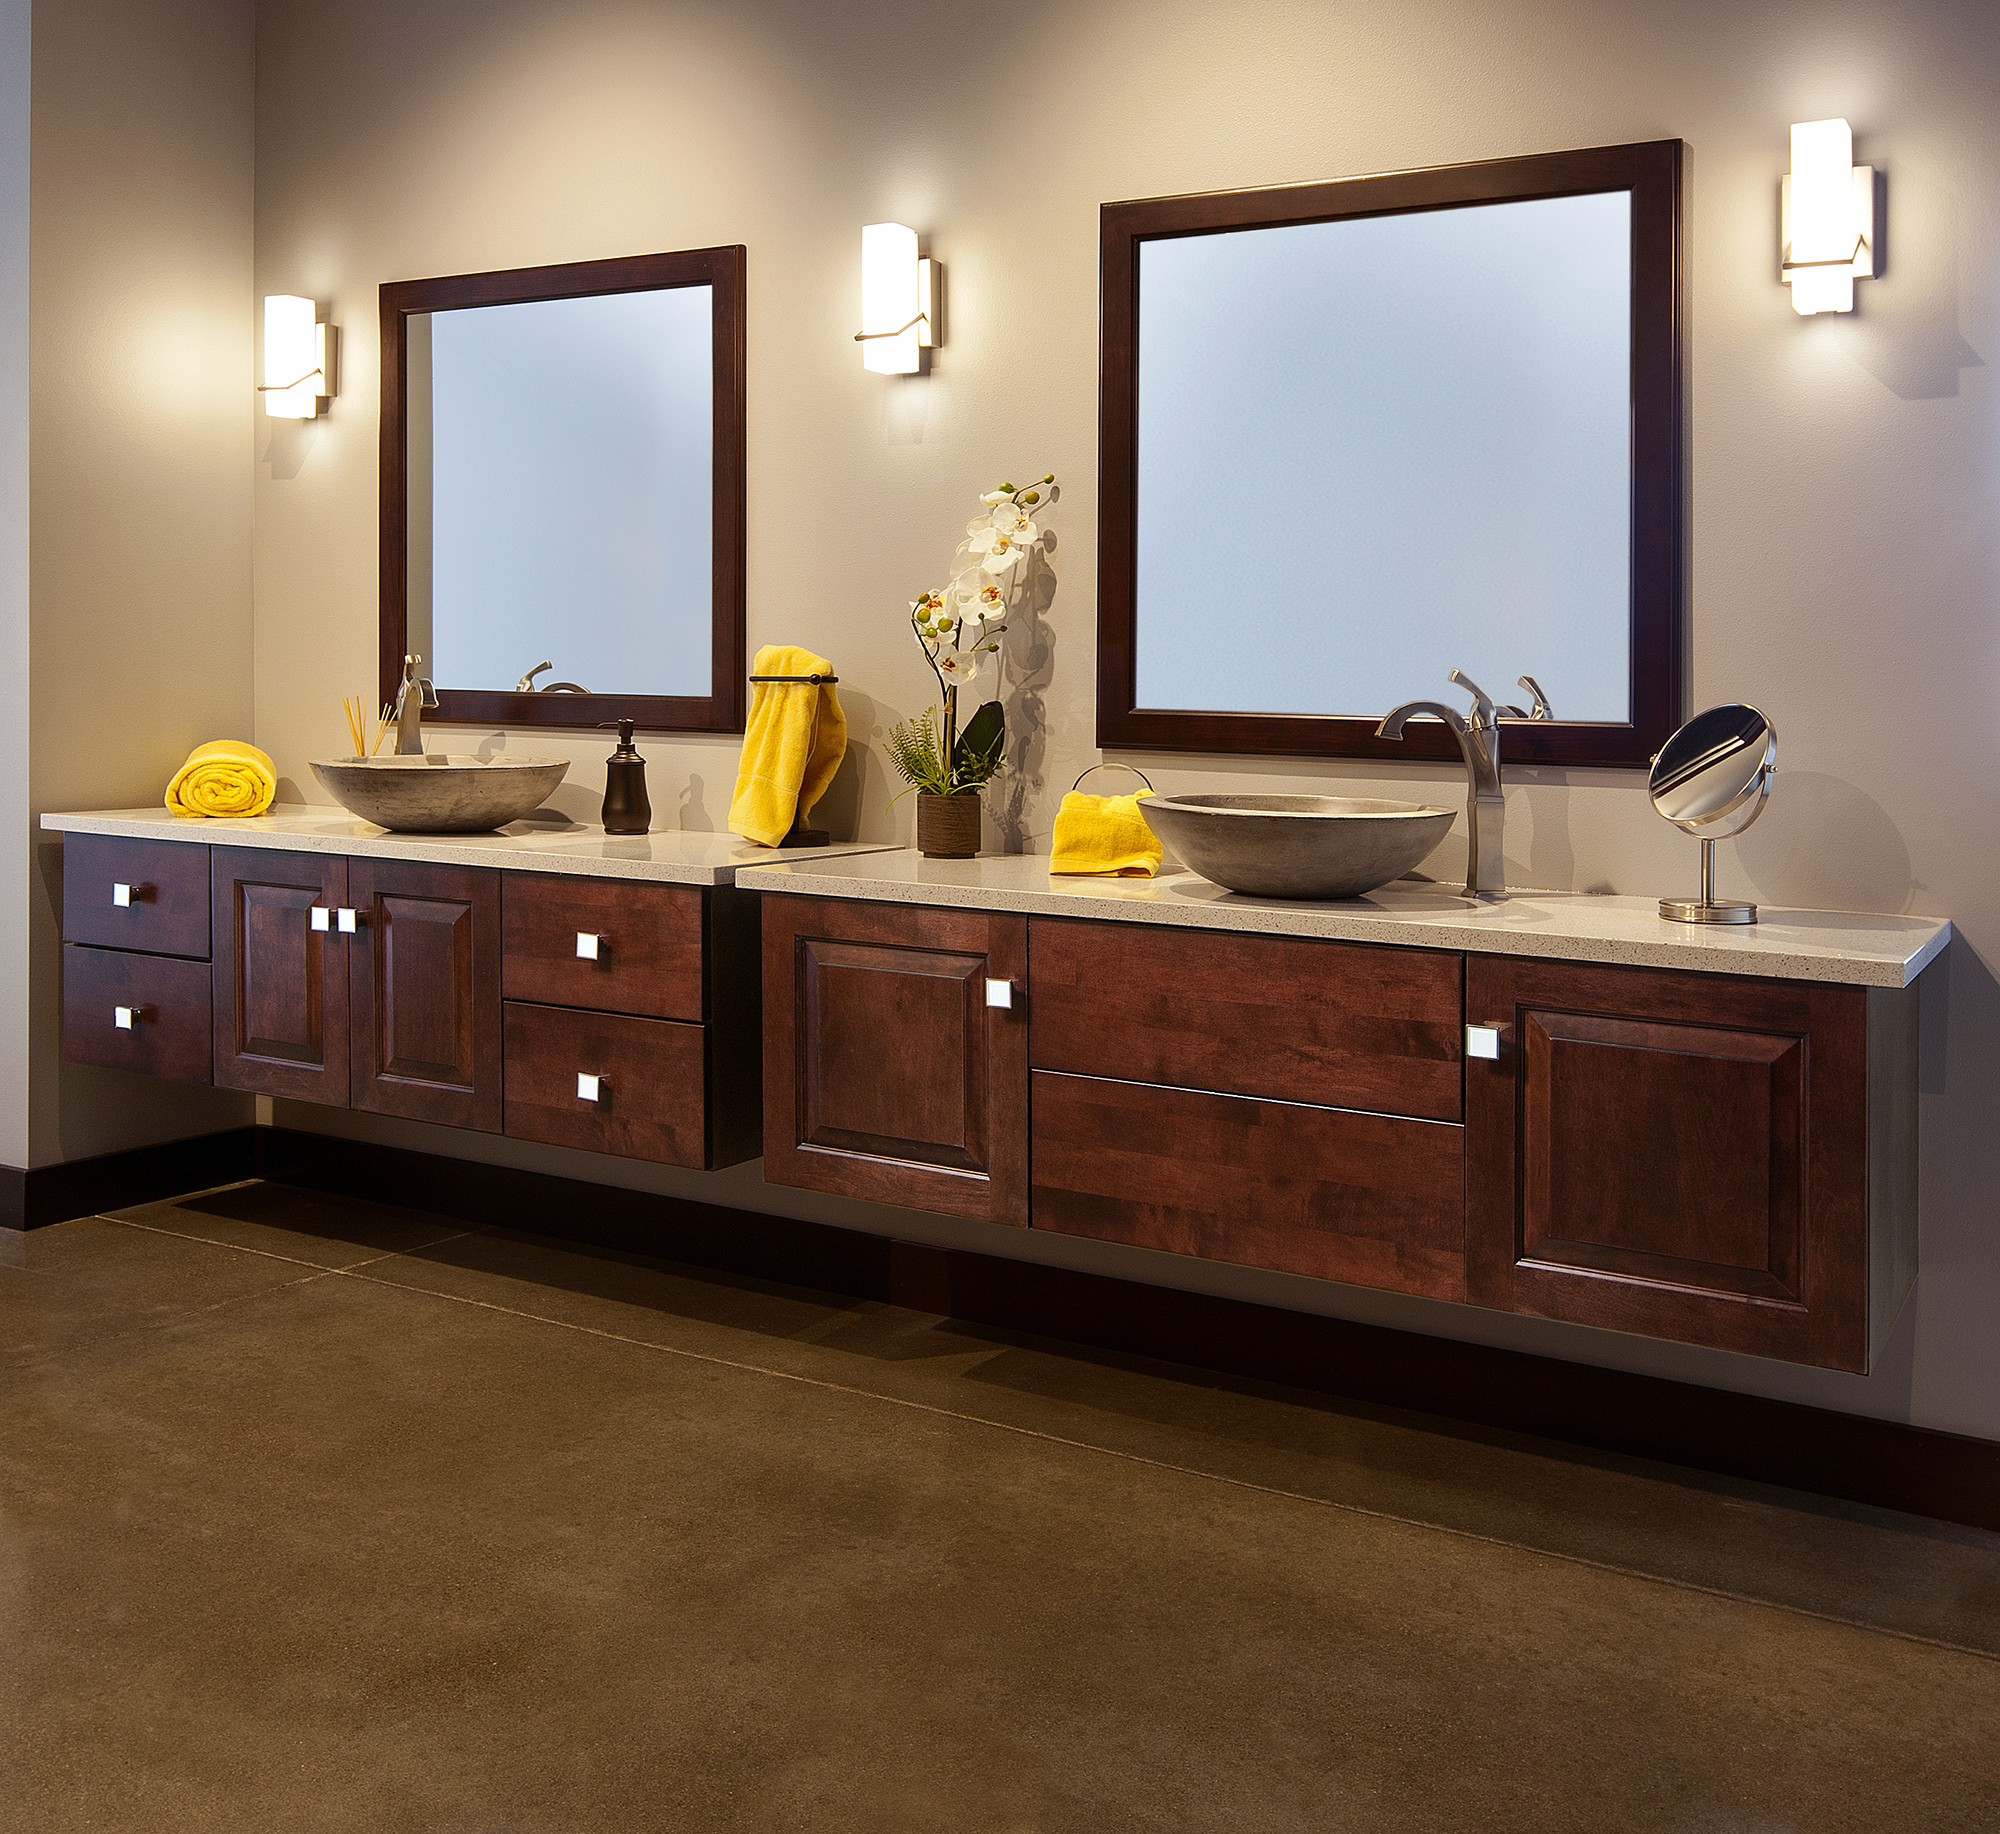 Stained floating vanity in Brandy by ShowplaceEVO